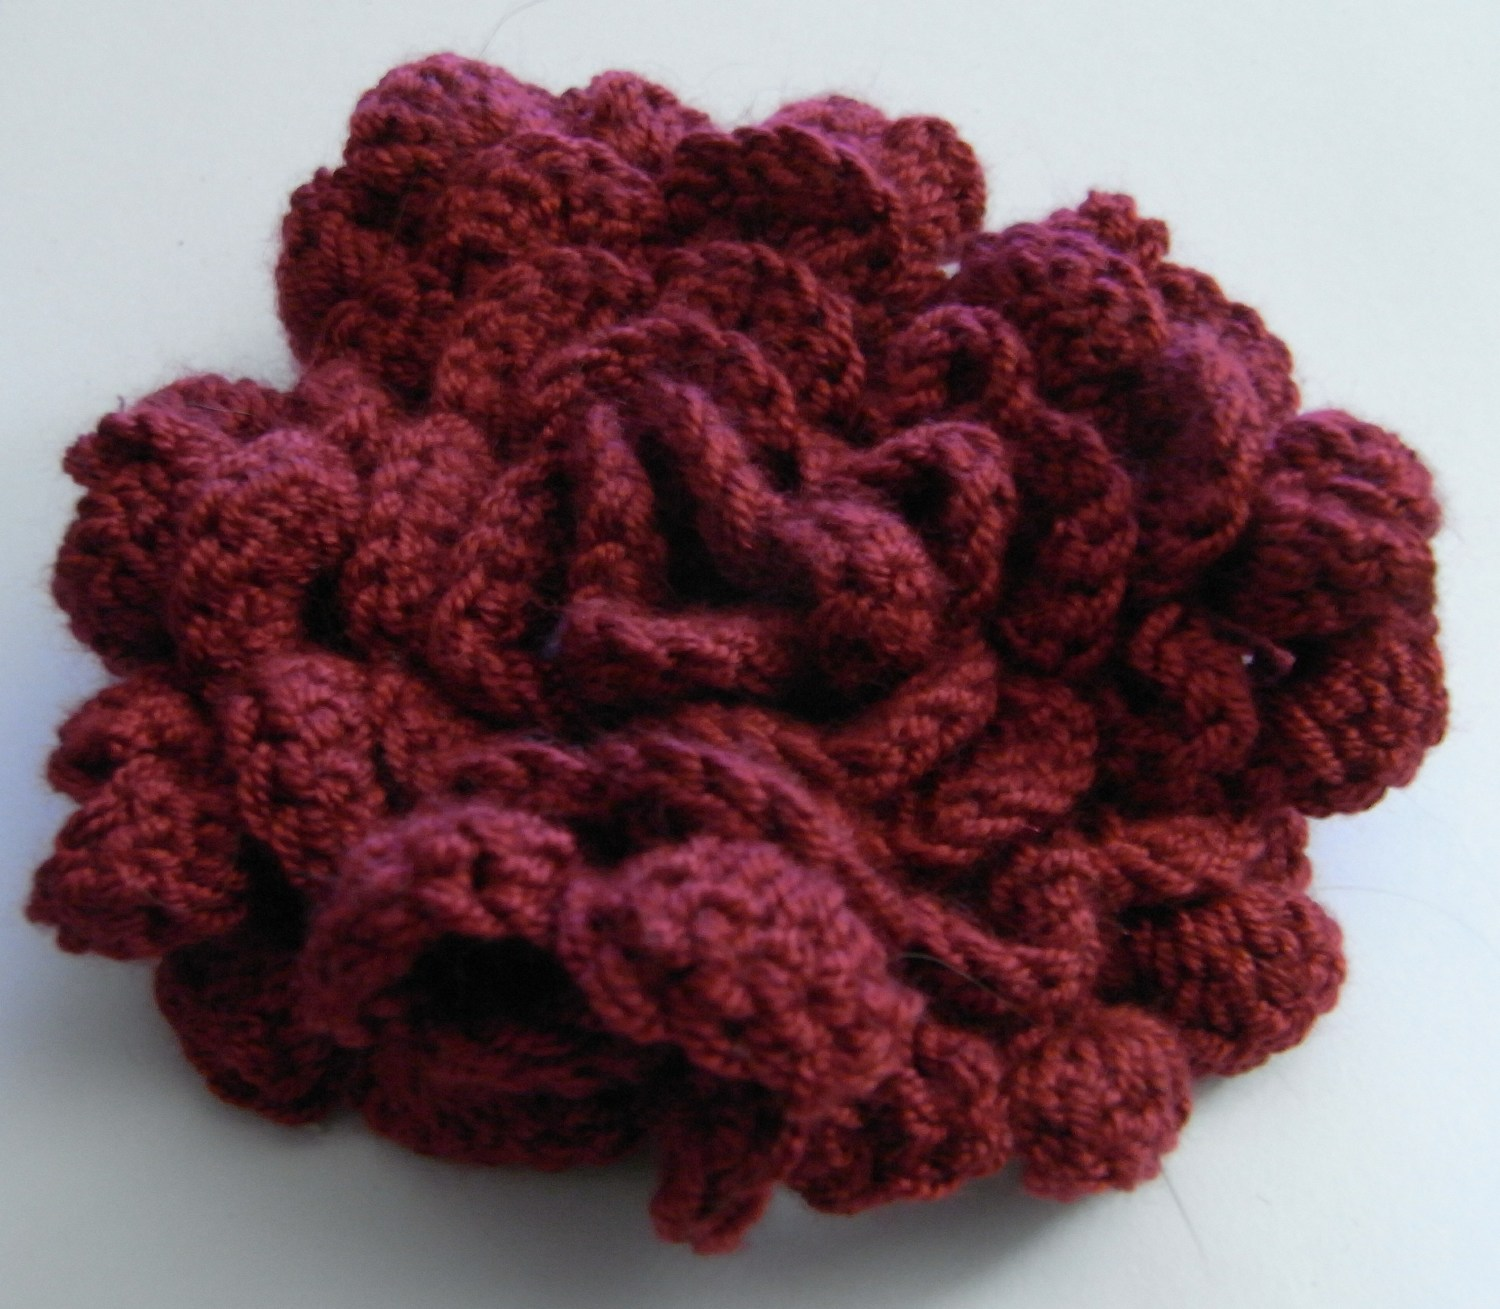 CROCHETED 3D FLOWER PATTERNS - Crochet Club